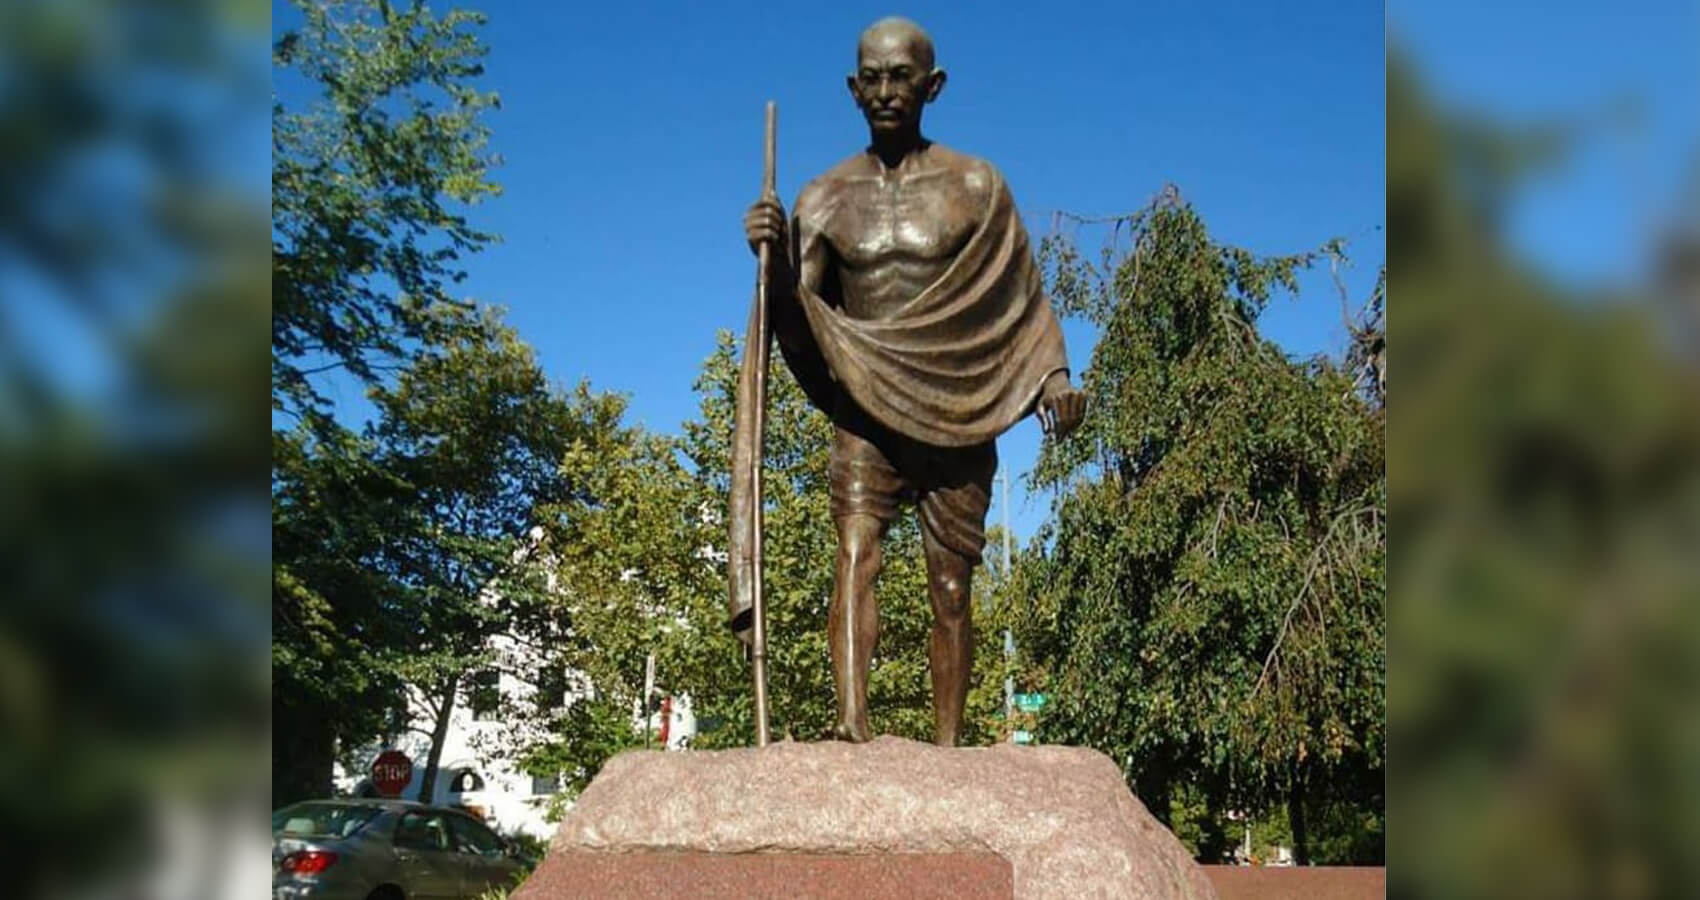 Mahatma Gandhi Statue at the Indian Embassy in Washington Vandalized